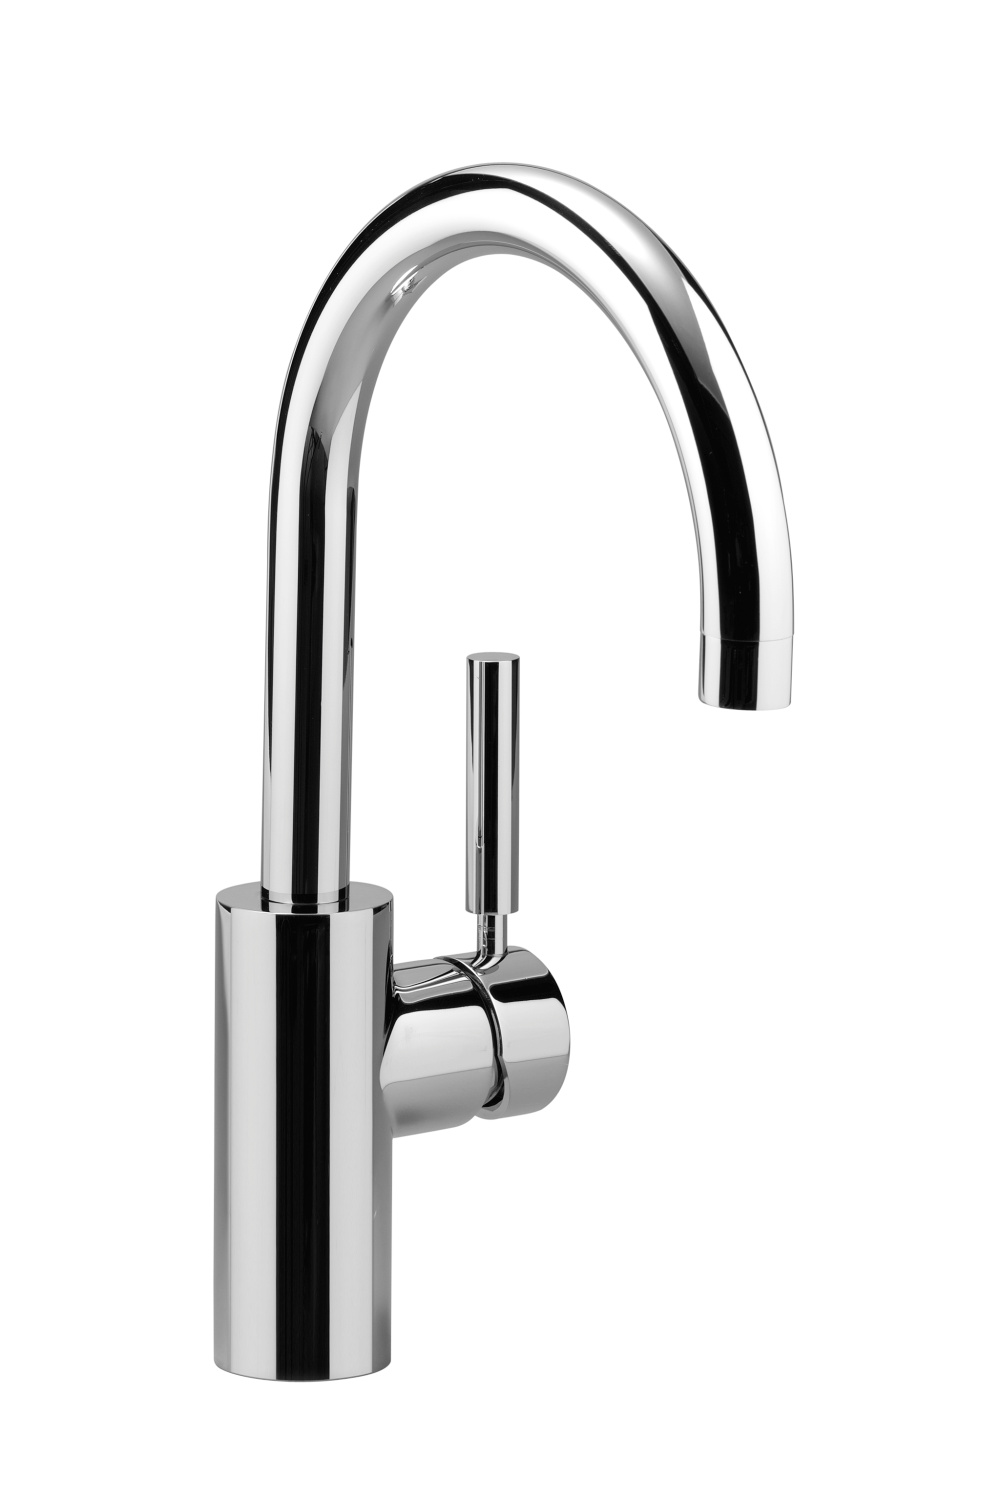 Single-lever basin mixer without pop-up waste - platinum matt - 33 505 885-06